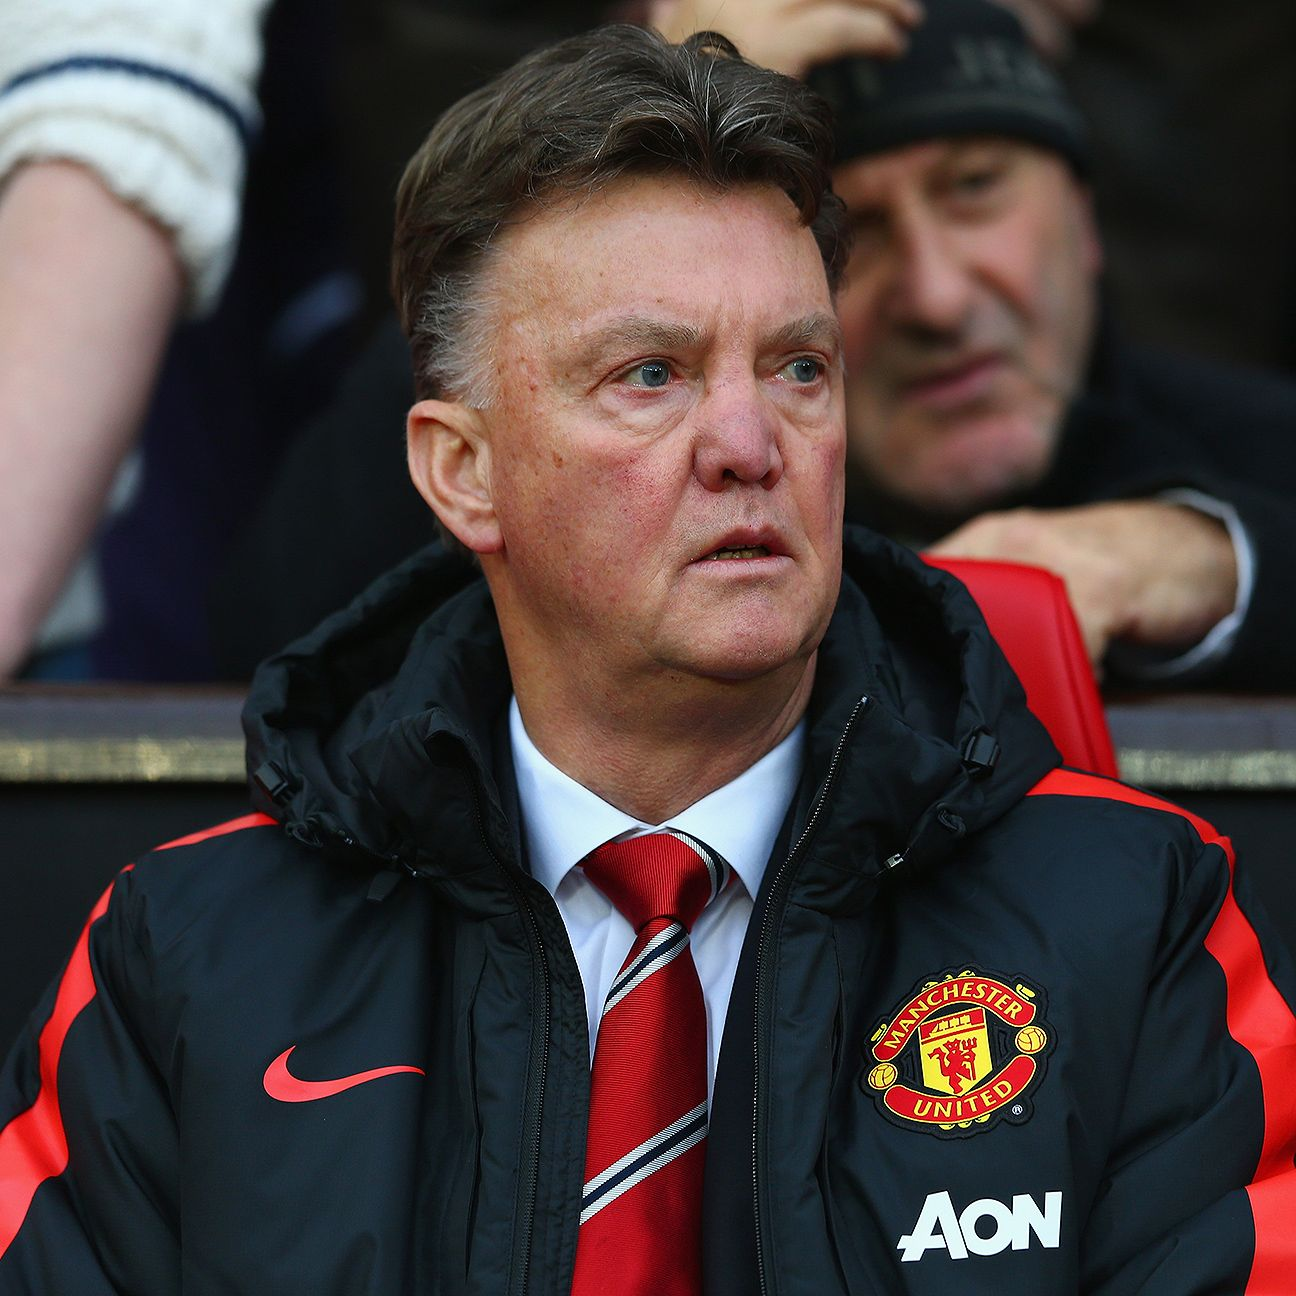 Louis van Gaal's Man United face their second sturdy test of the festive fixtures with a visit to Tottenham on Sunday.